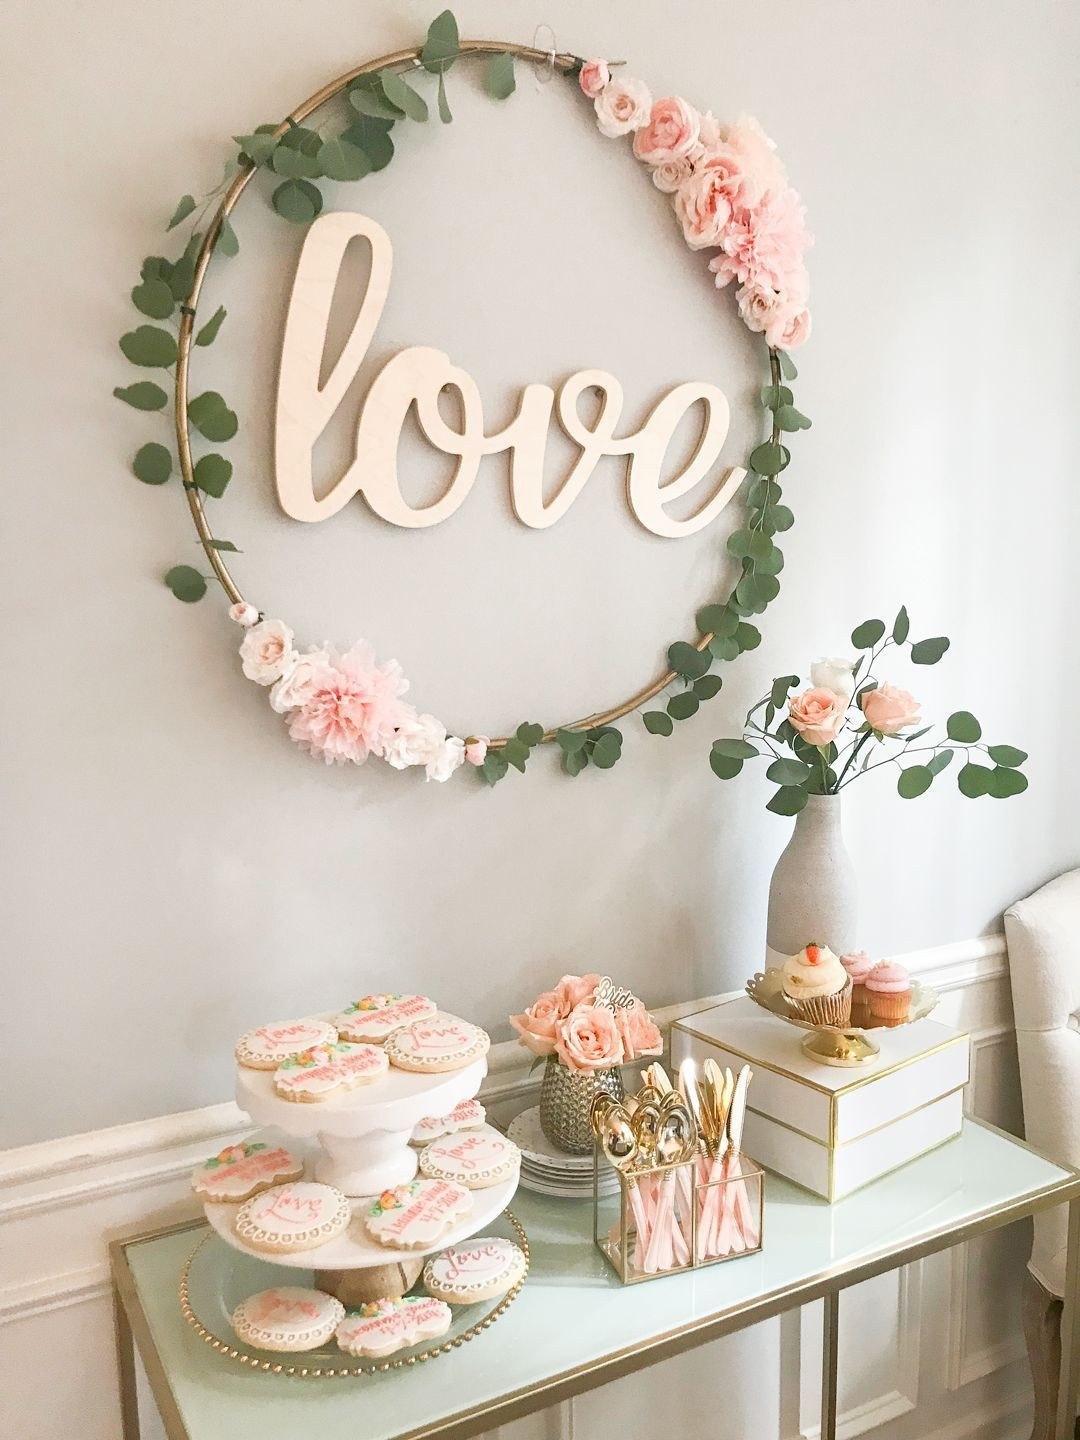 DIY Hula Hoop Love Sign DIYbridalshowerdecor bridal shower